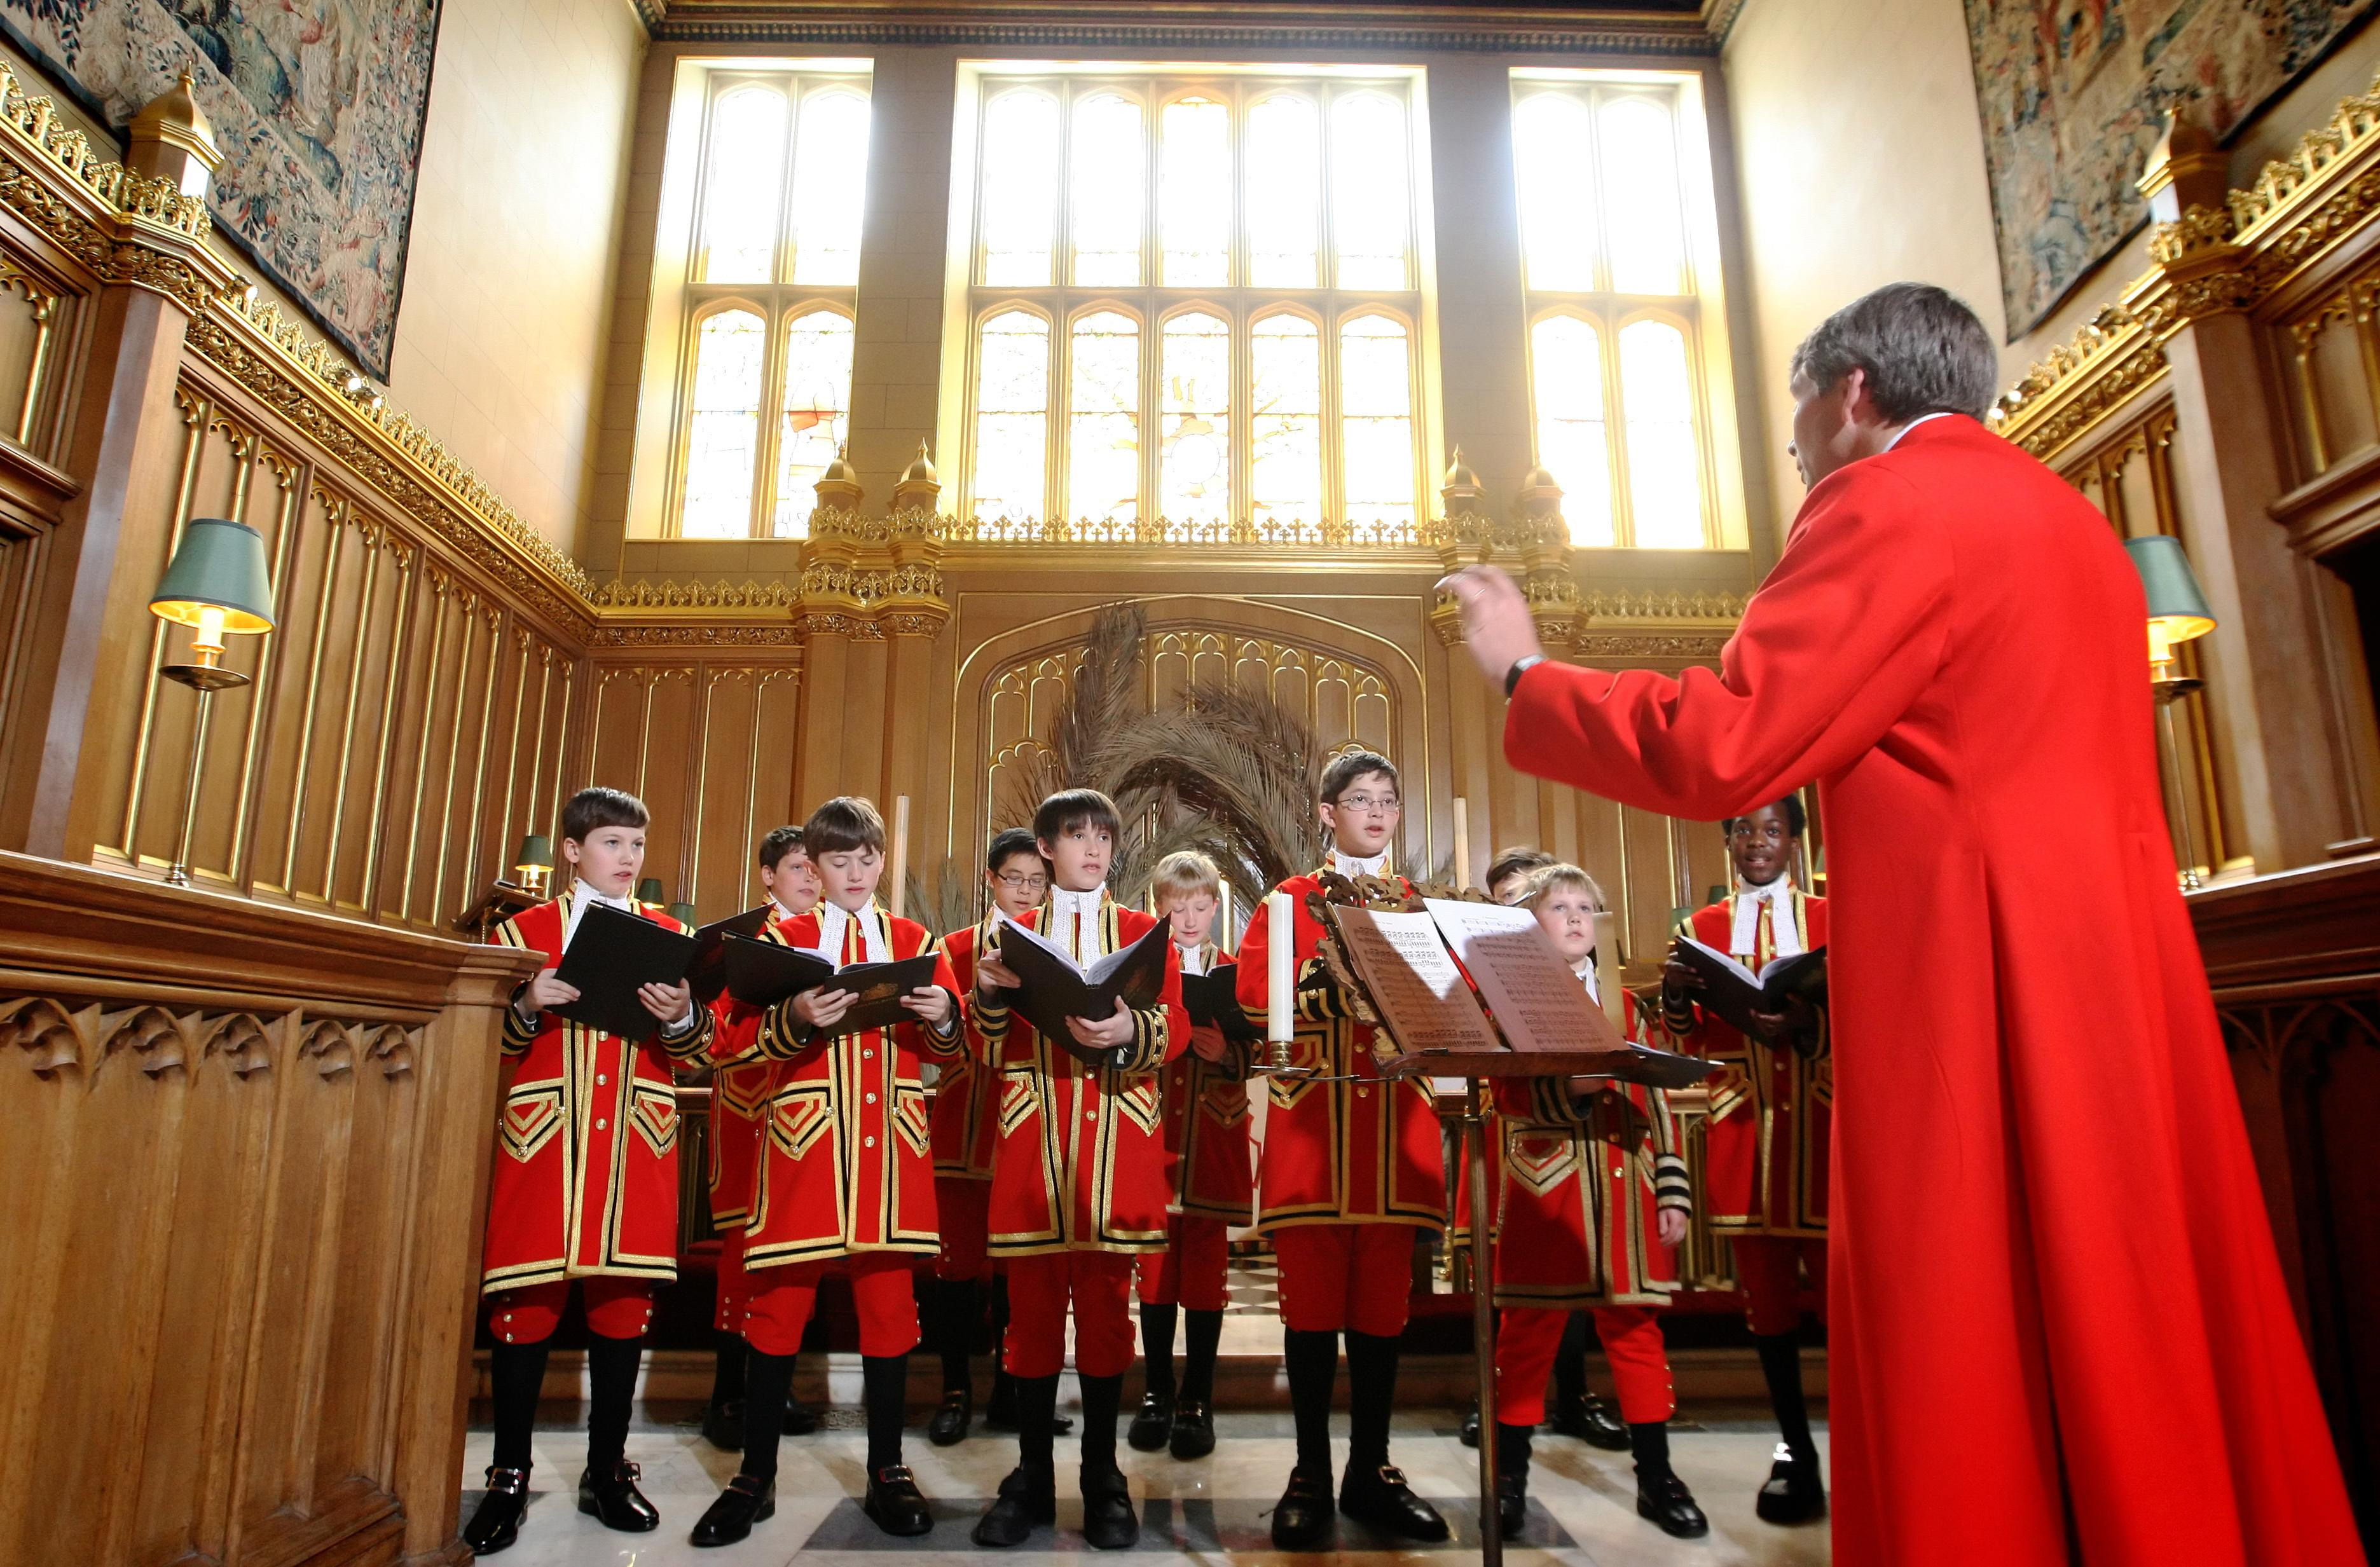 The choir singing in the Chapel Royal